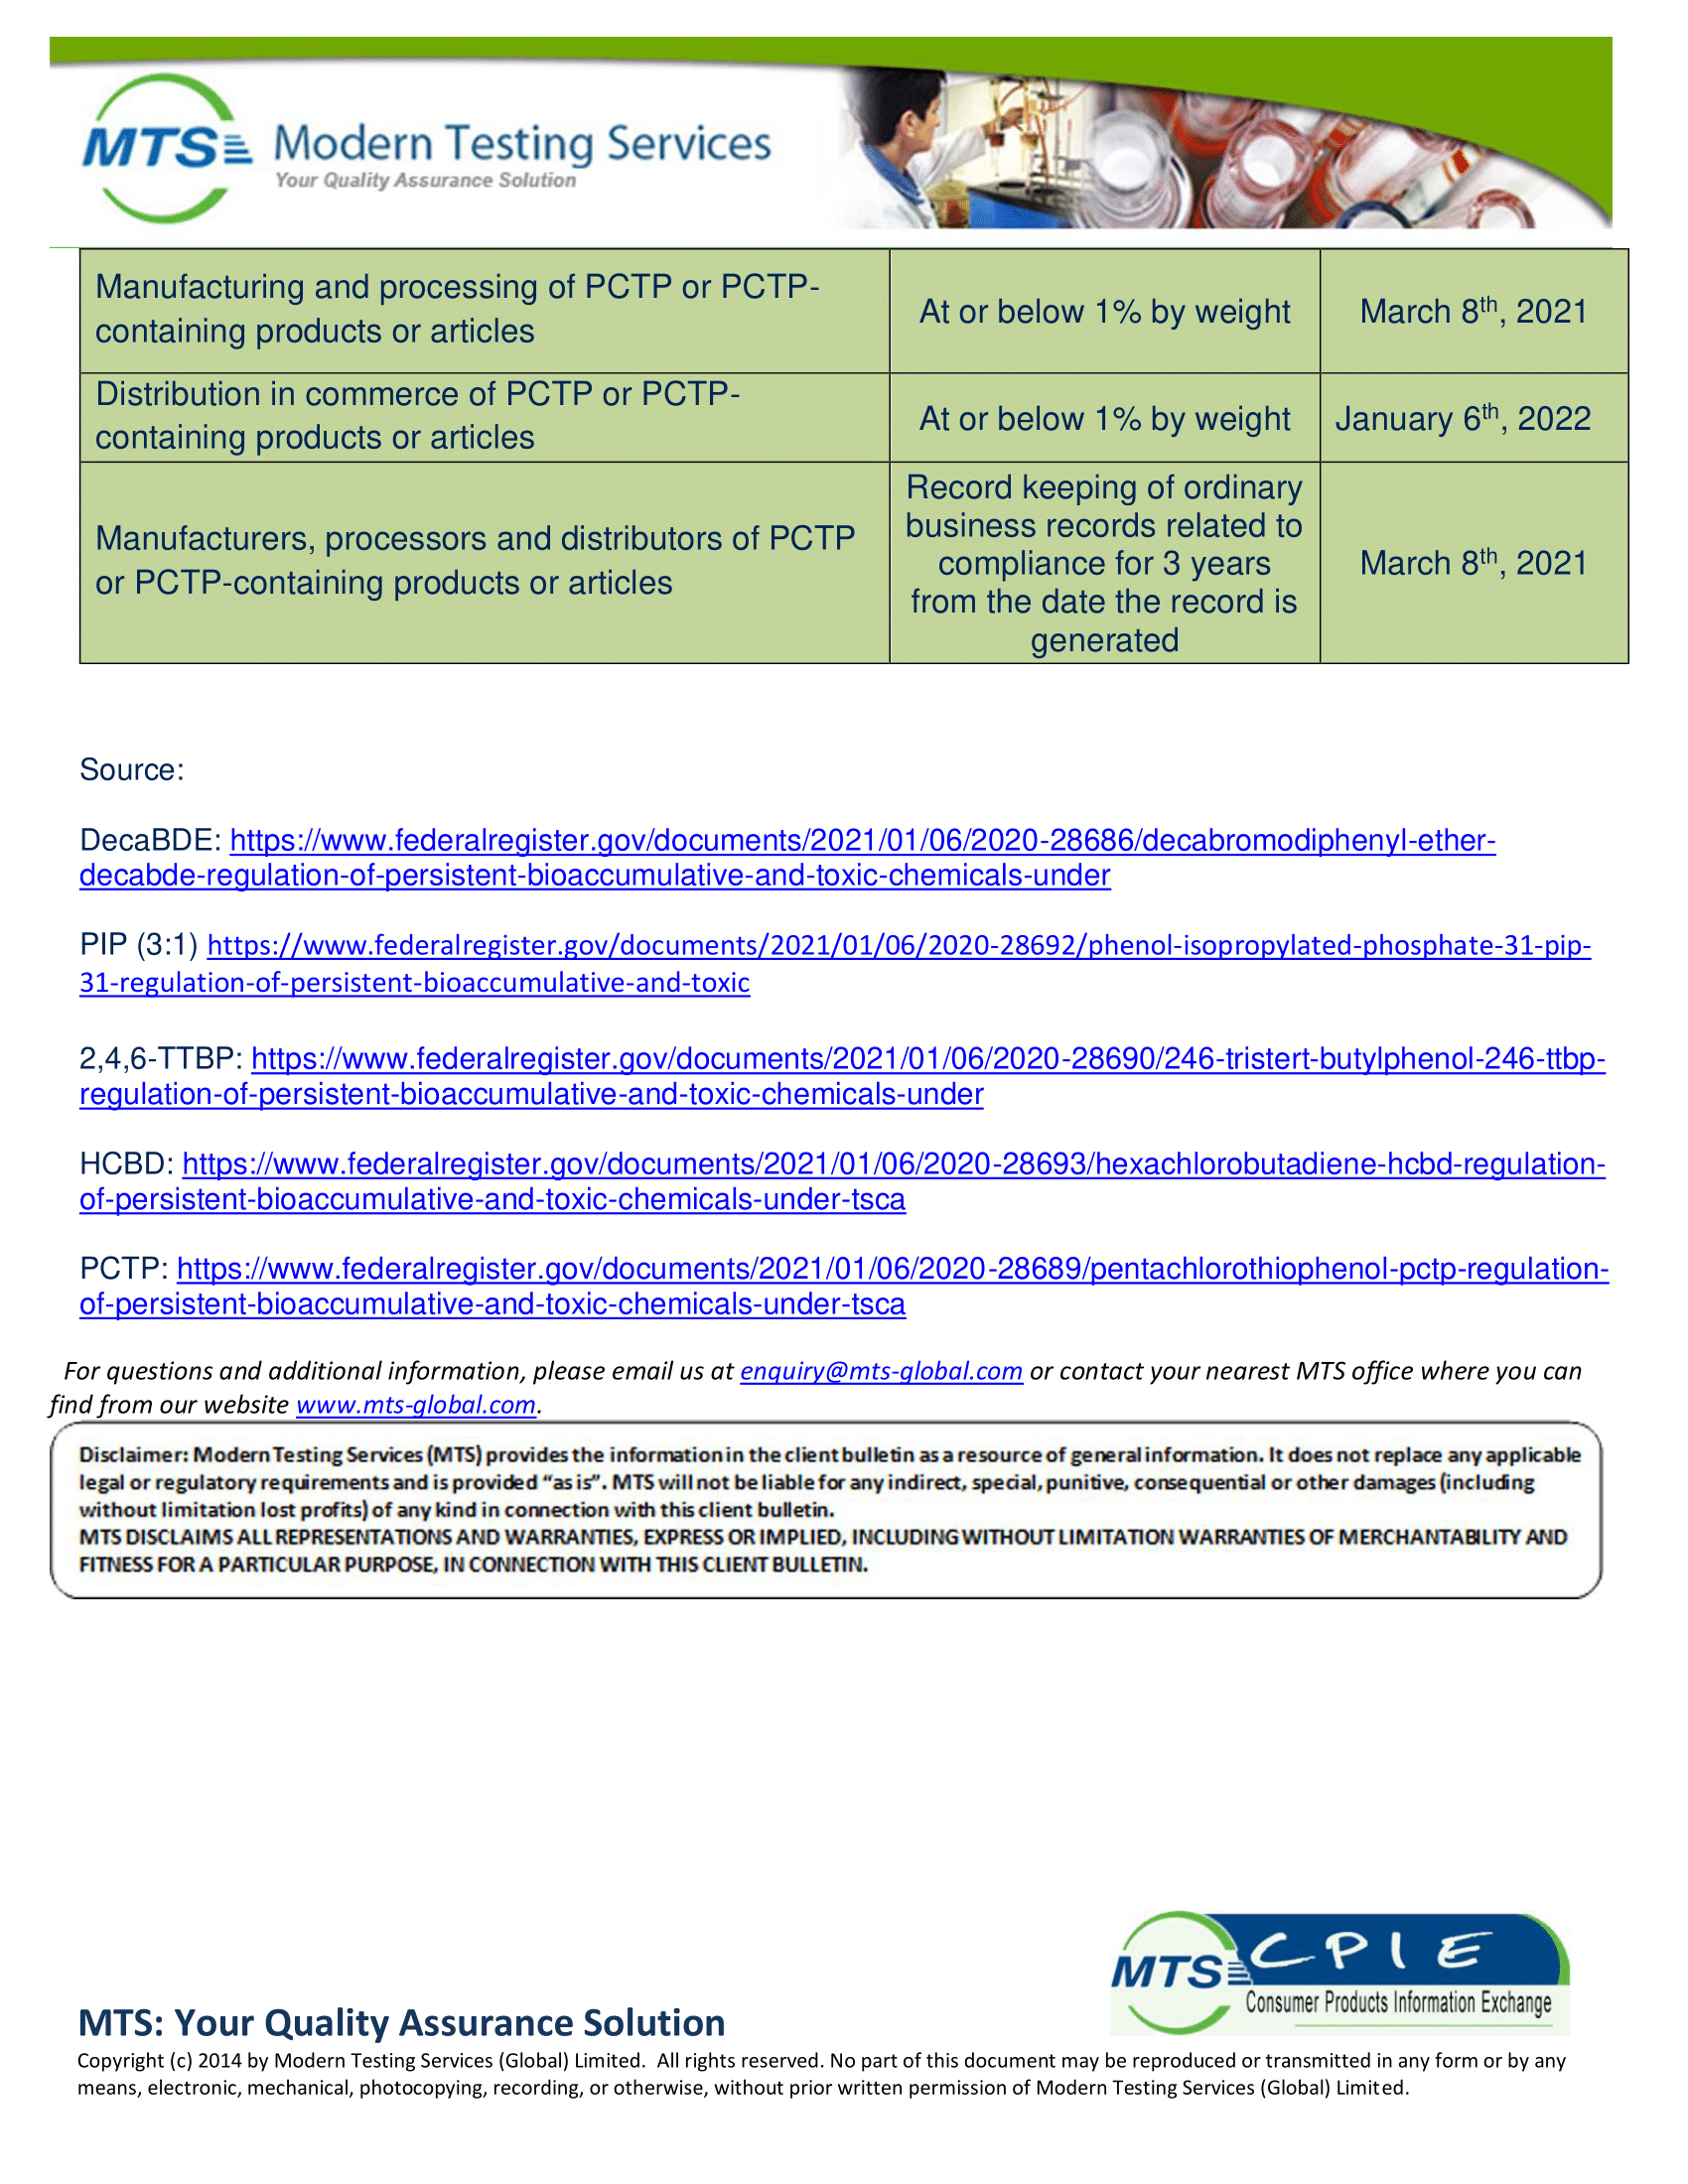 CPIE-005-21 US EPA Issues 5 Final Rules for PBT Chemicals-4